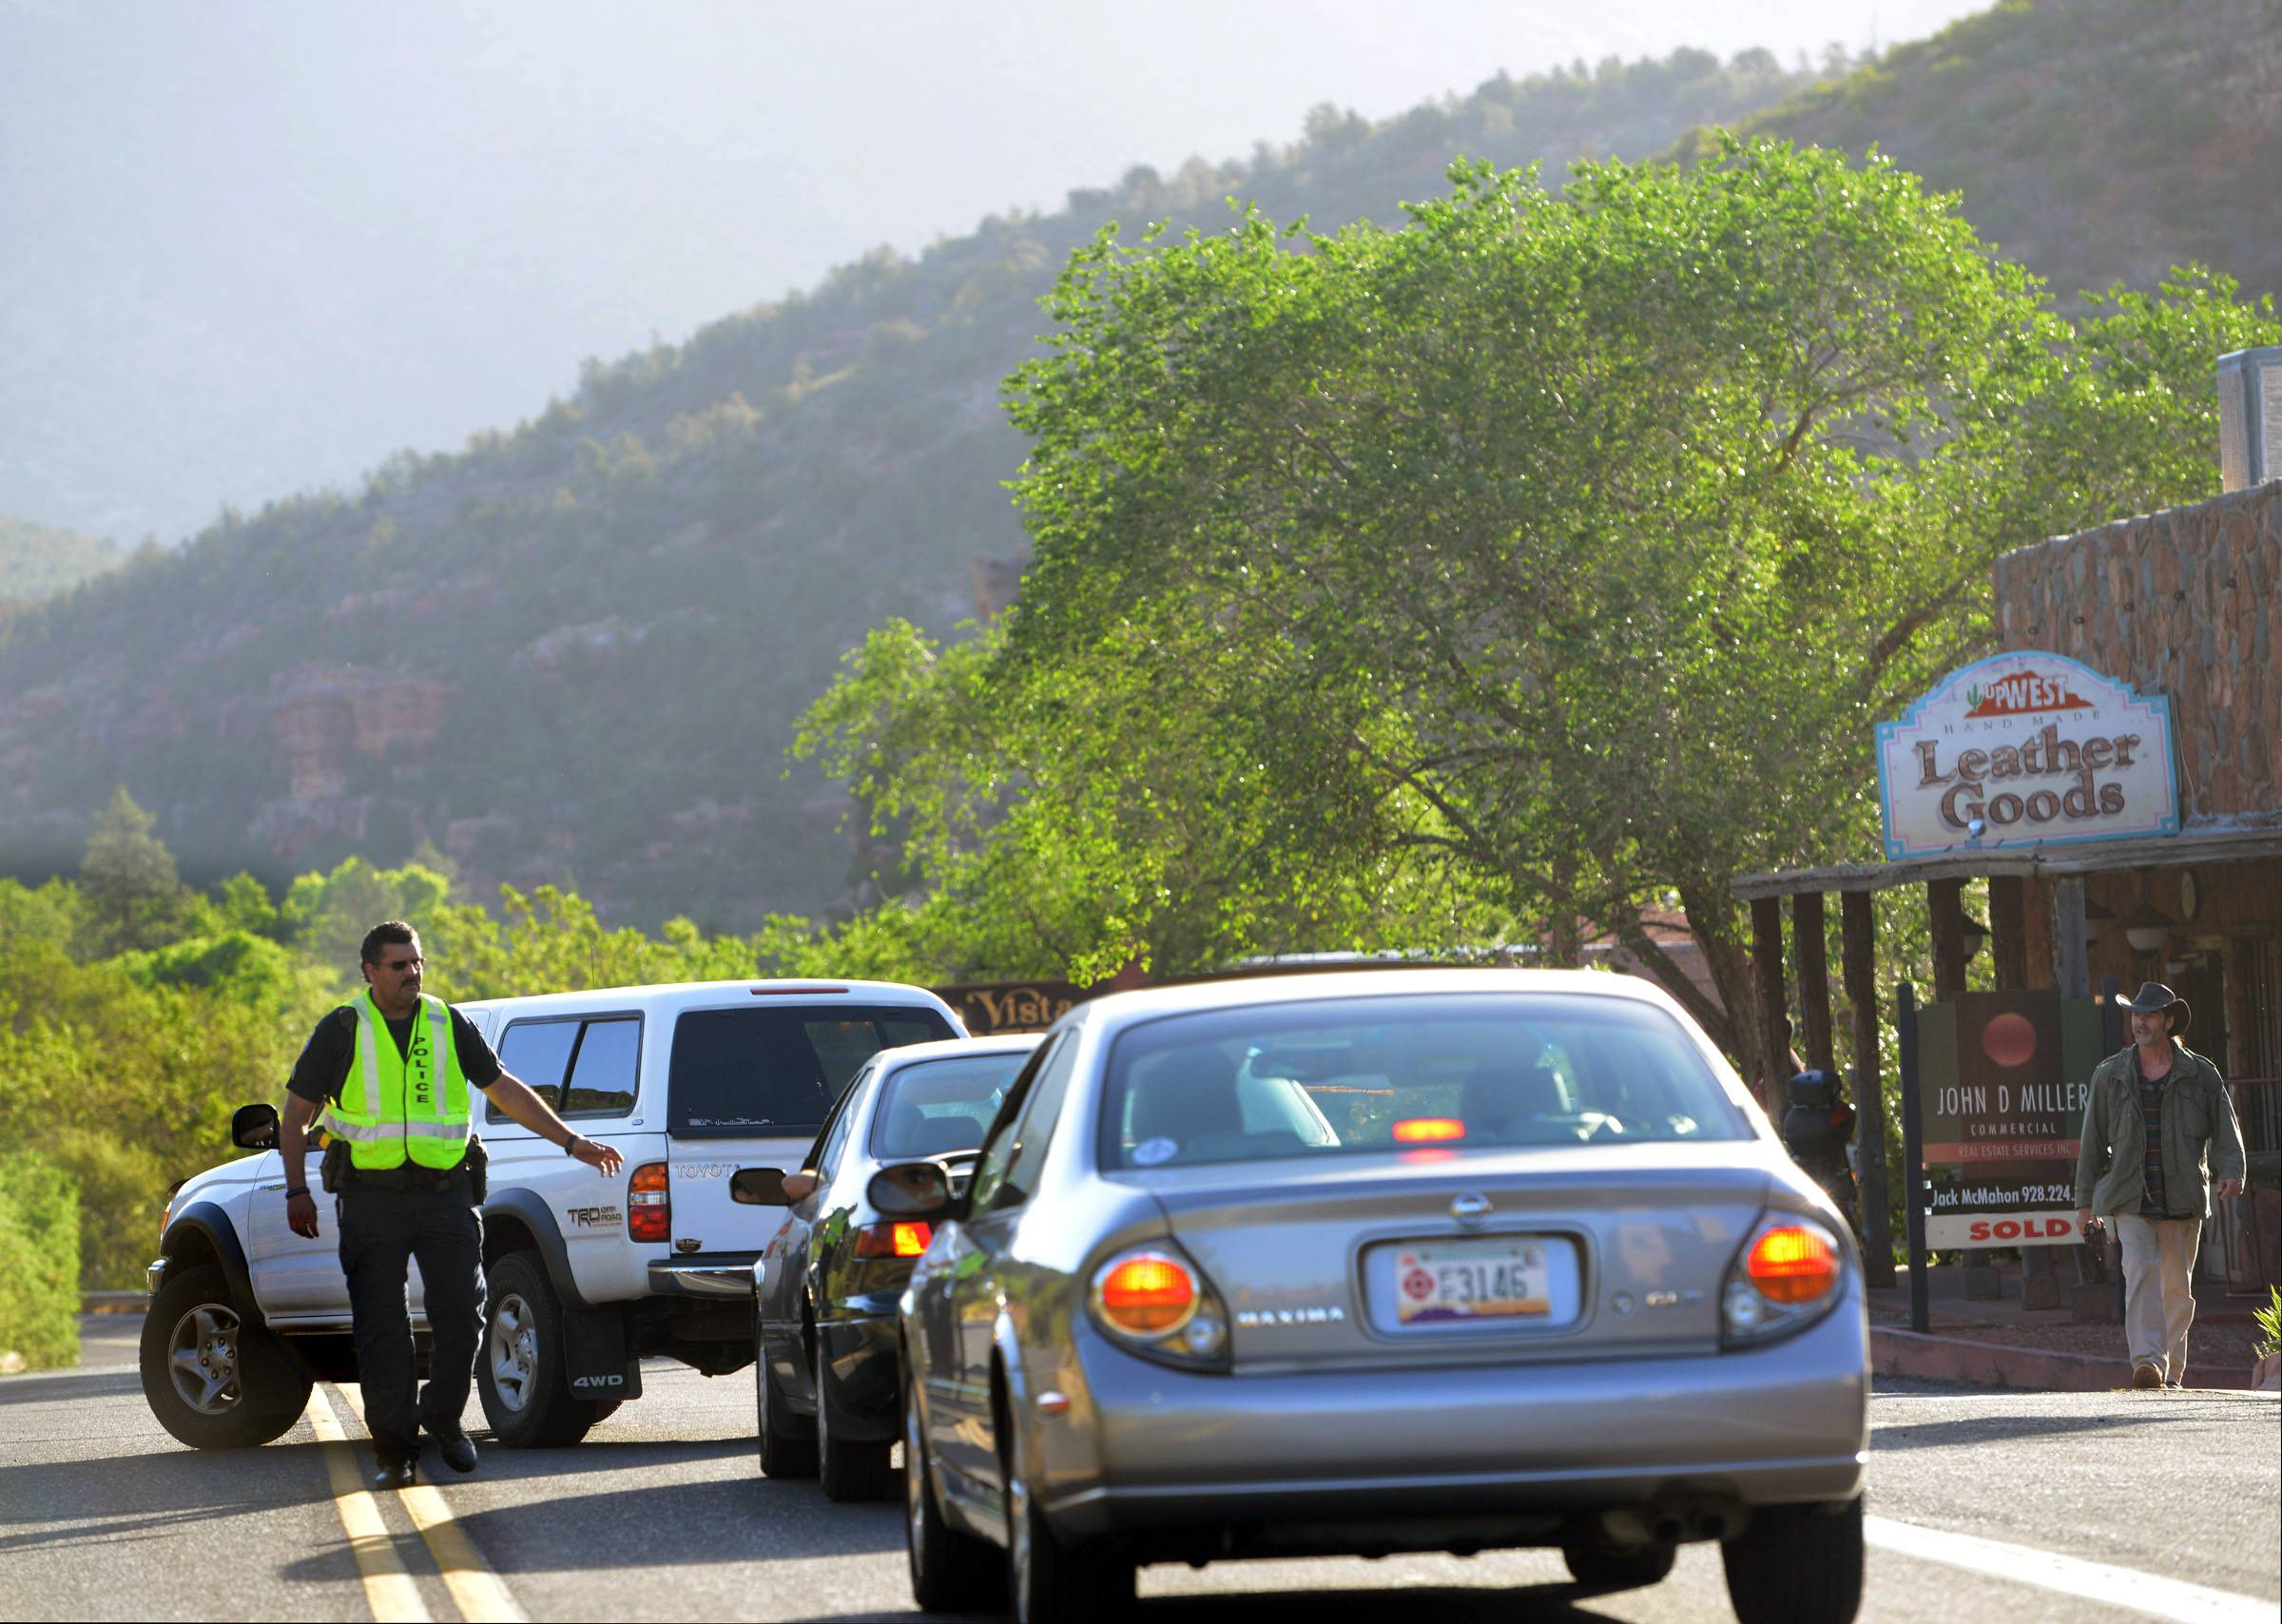 Sedona Police close off Oak Creak Canyon and turn around traffic in downtown Sedona, Ariz. near the downtown Sedona Arts Center on Wednesday, May 21, 2014, as fire crews work on a wildfire that closed 89A in the canyon, a popular tourist road.